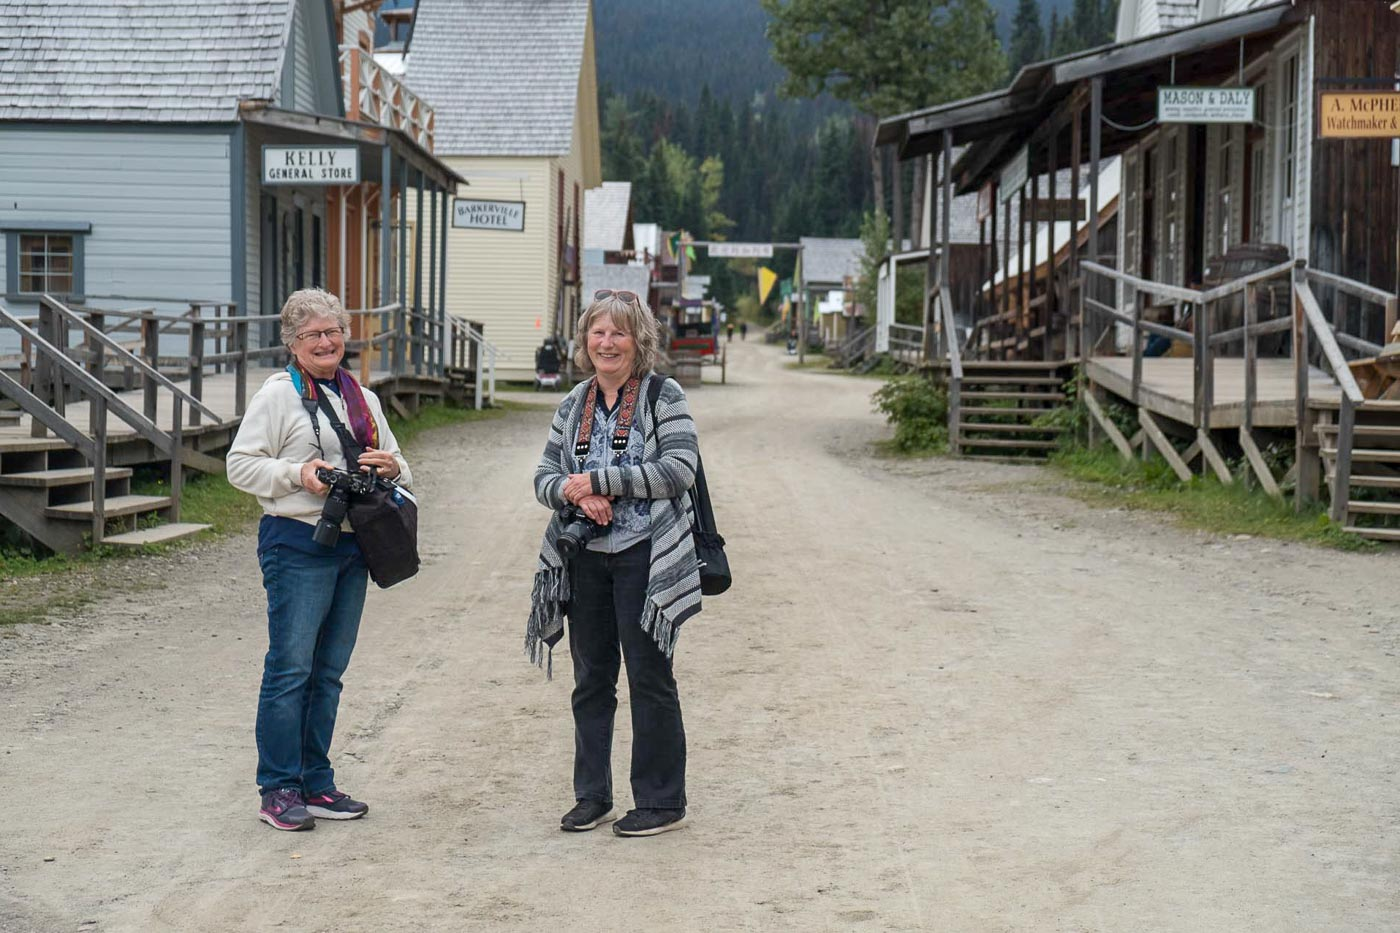 two photographers ready to explore the creative possibilities in Barkerville Historic town.